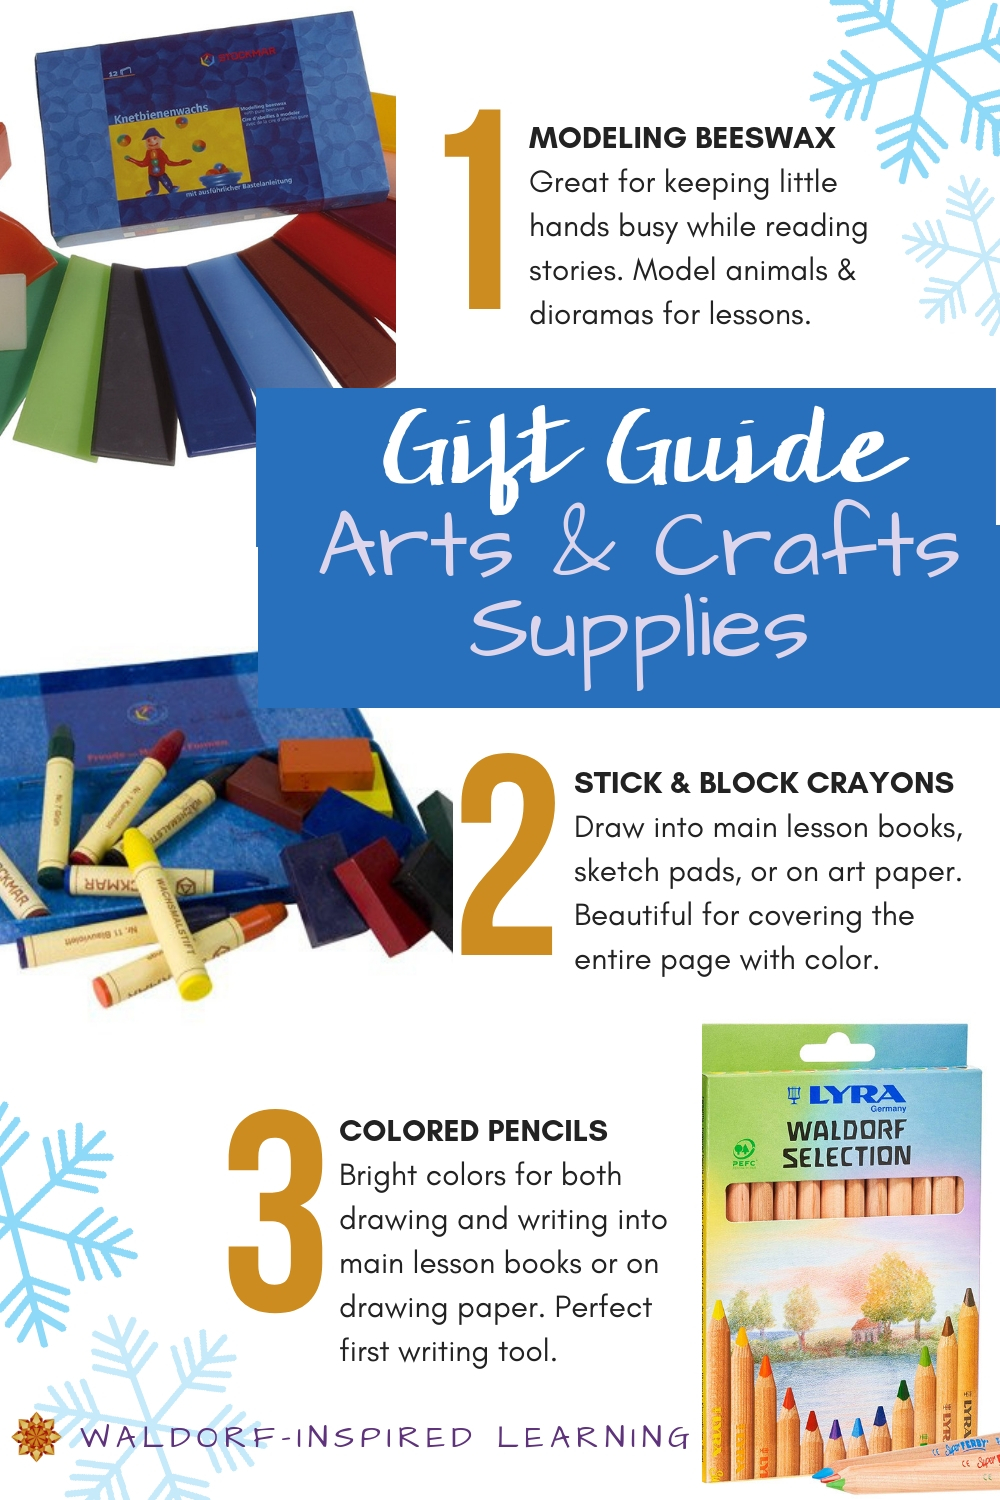 Gift Guide Arts & Crafts Supplies